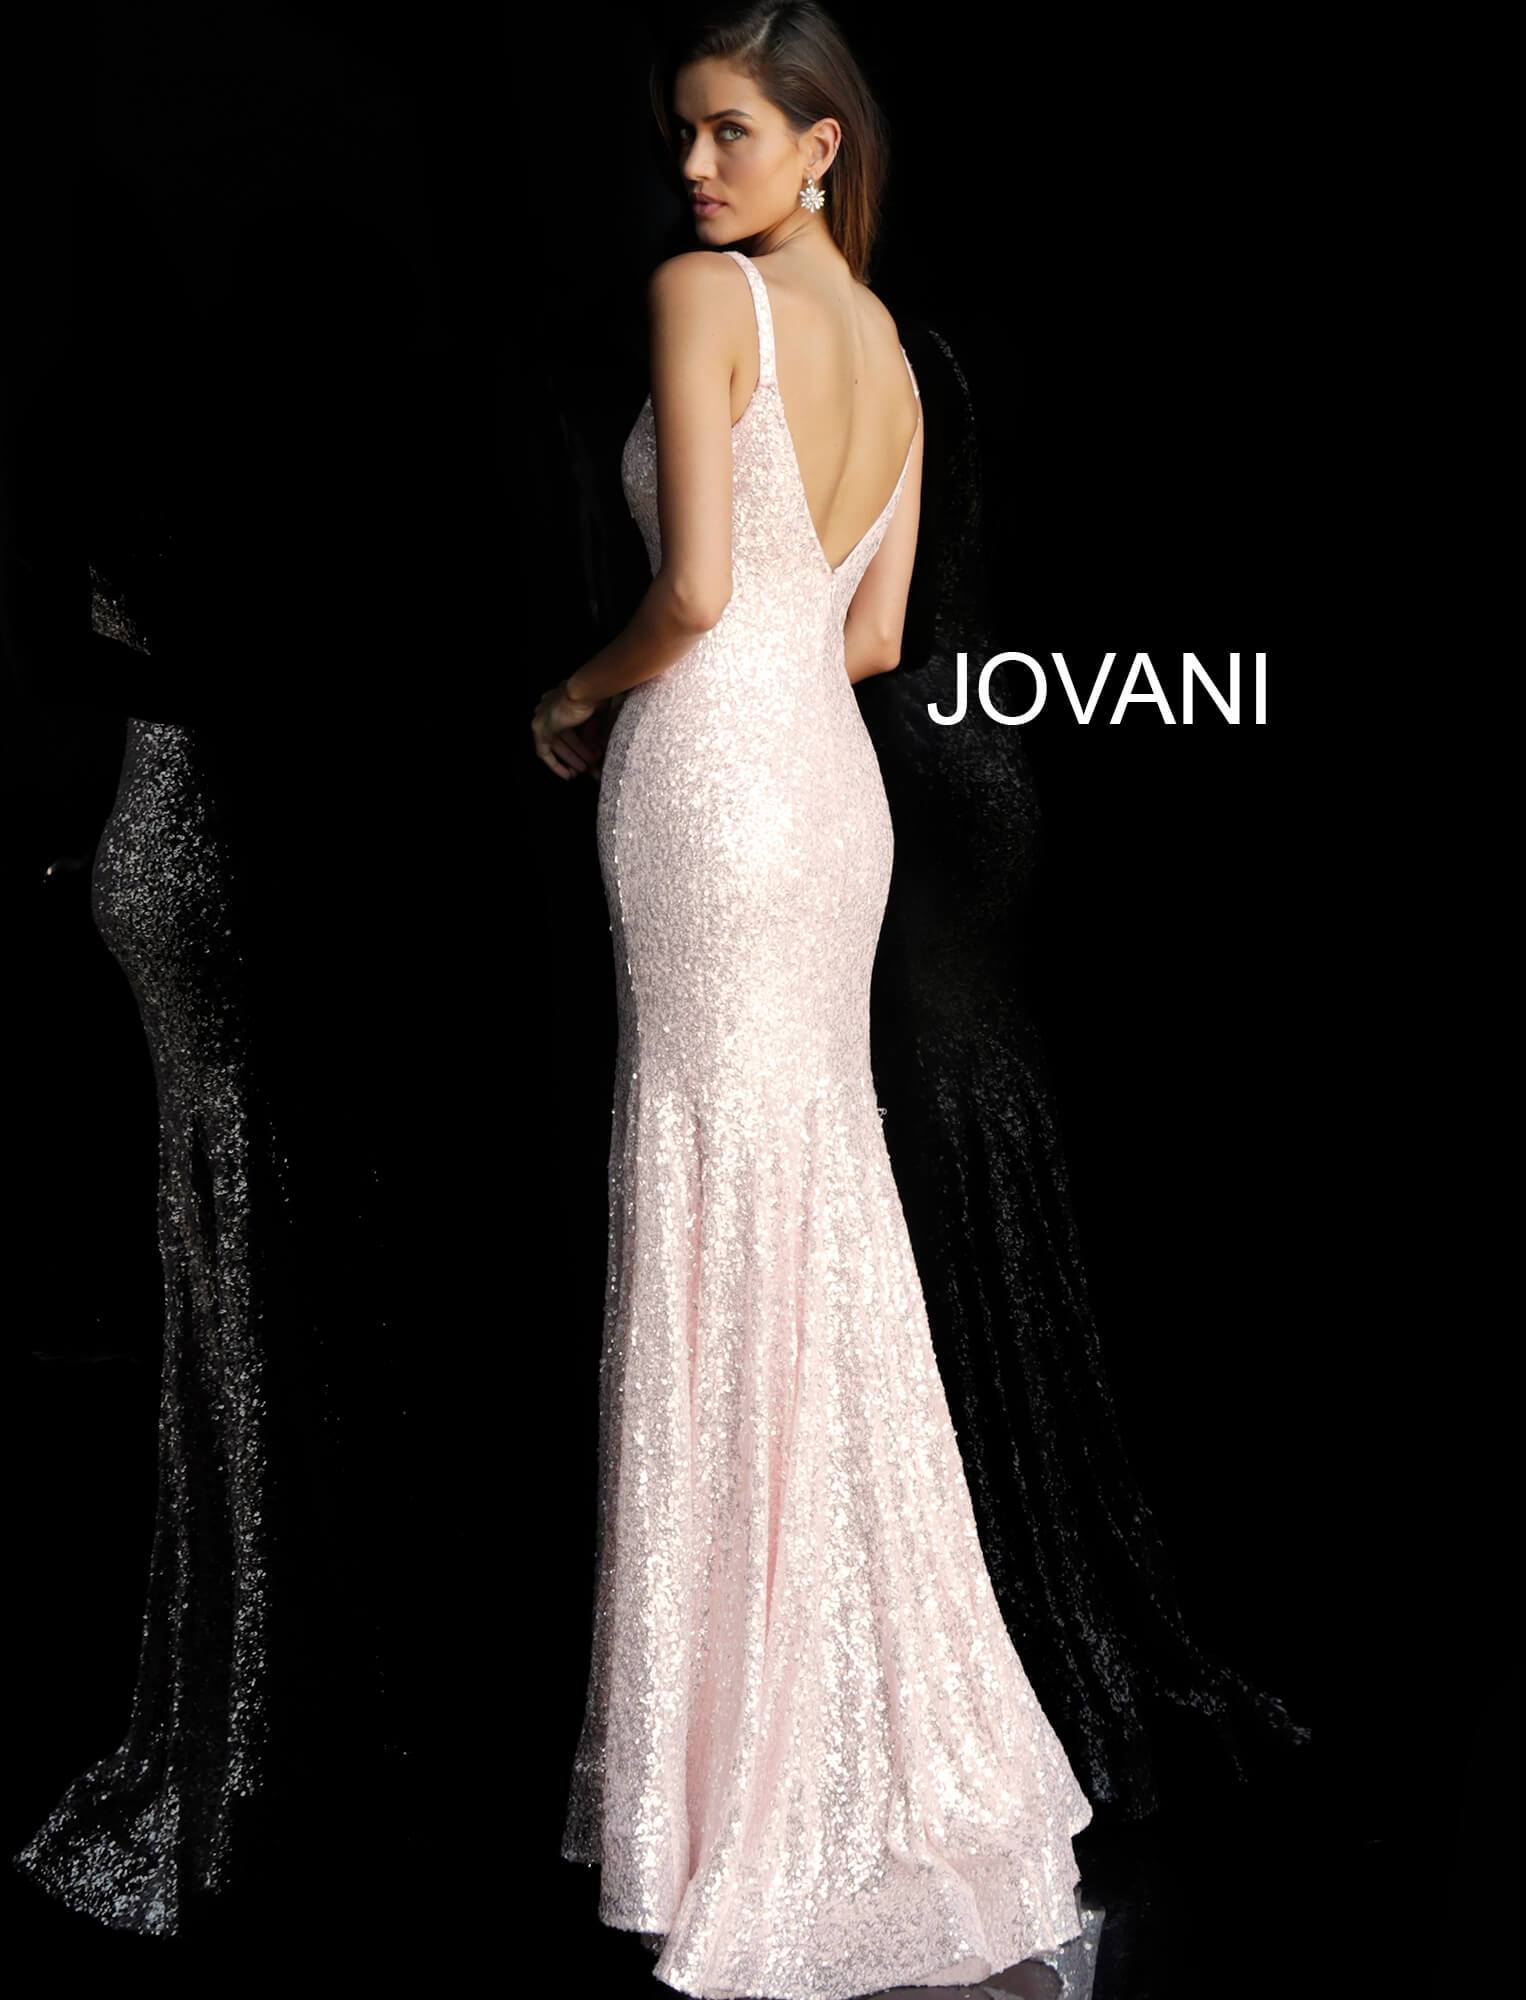 Jovani Blush Sequin Gown